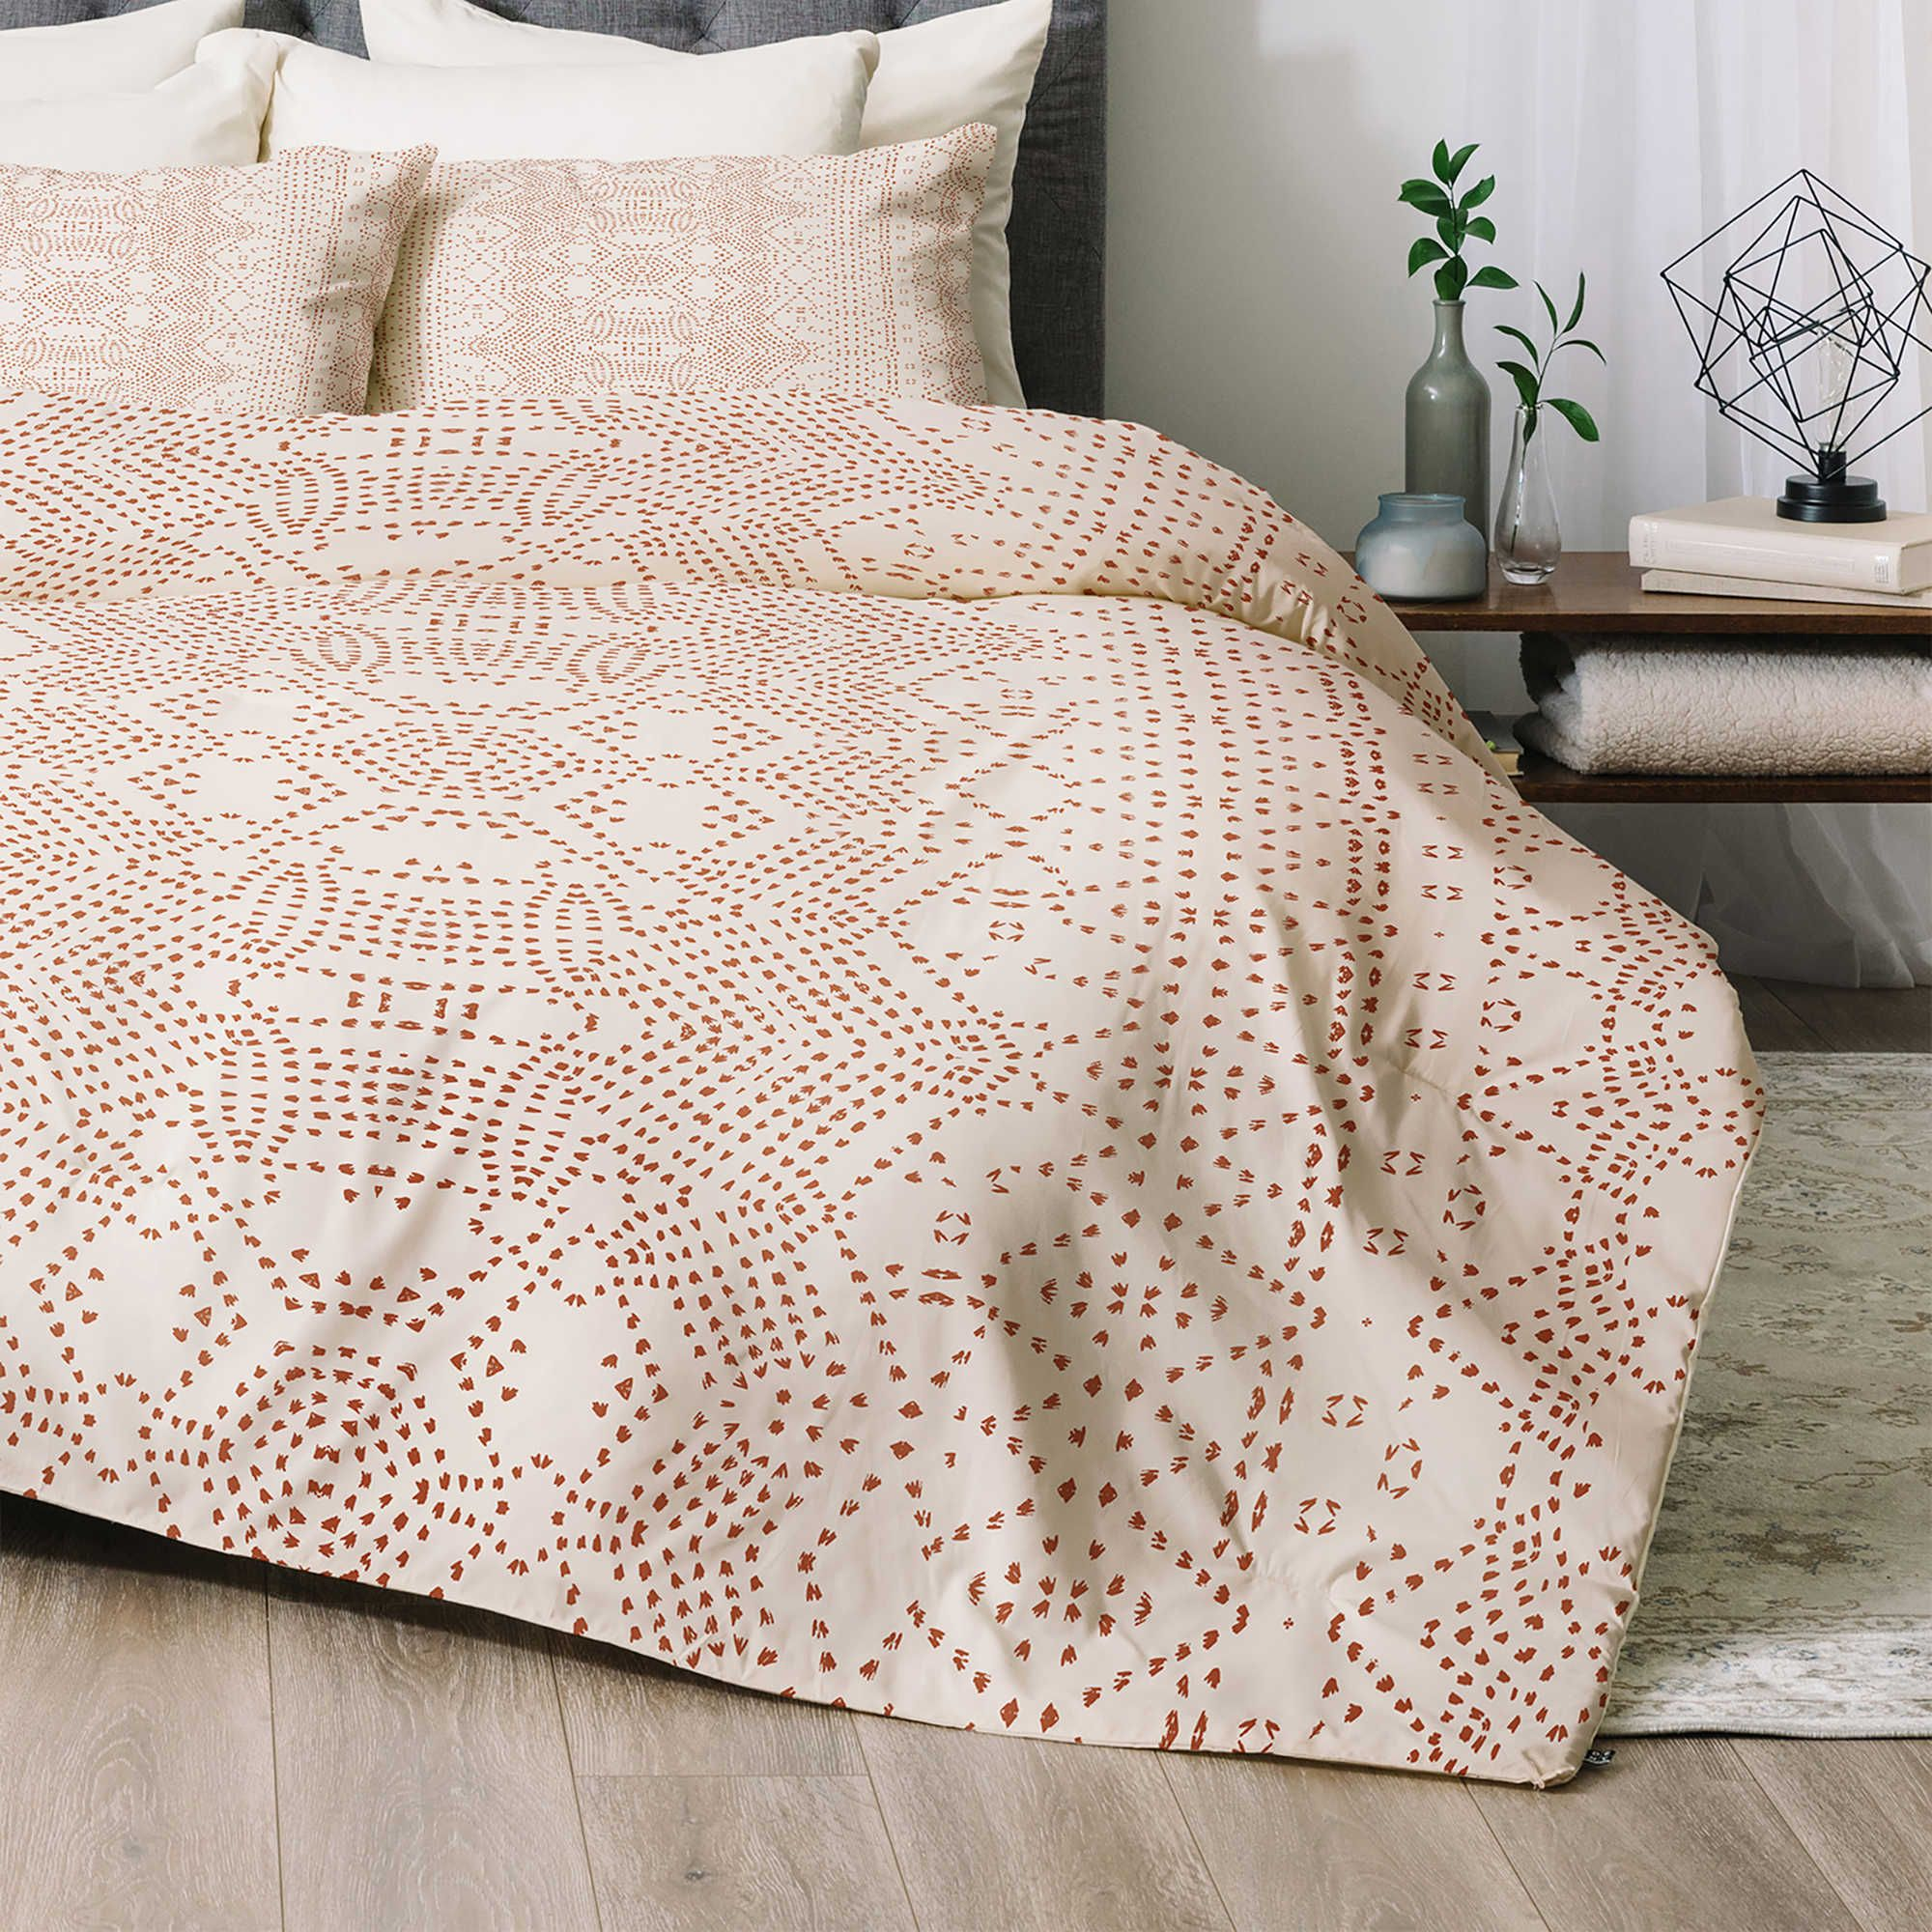 shopping deals guides sets kids com comforter alibaba piece pink at for a cheap in ruffles pinch xl bedding chevron on girls quotations twin find line get teen pleat bed